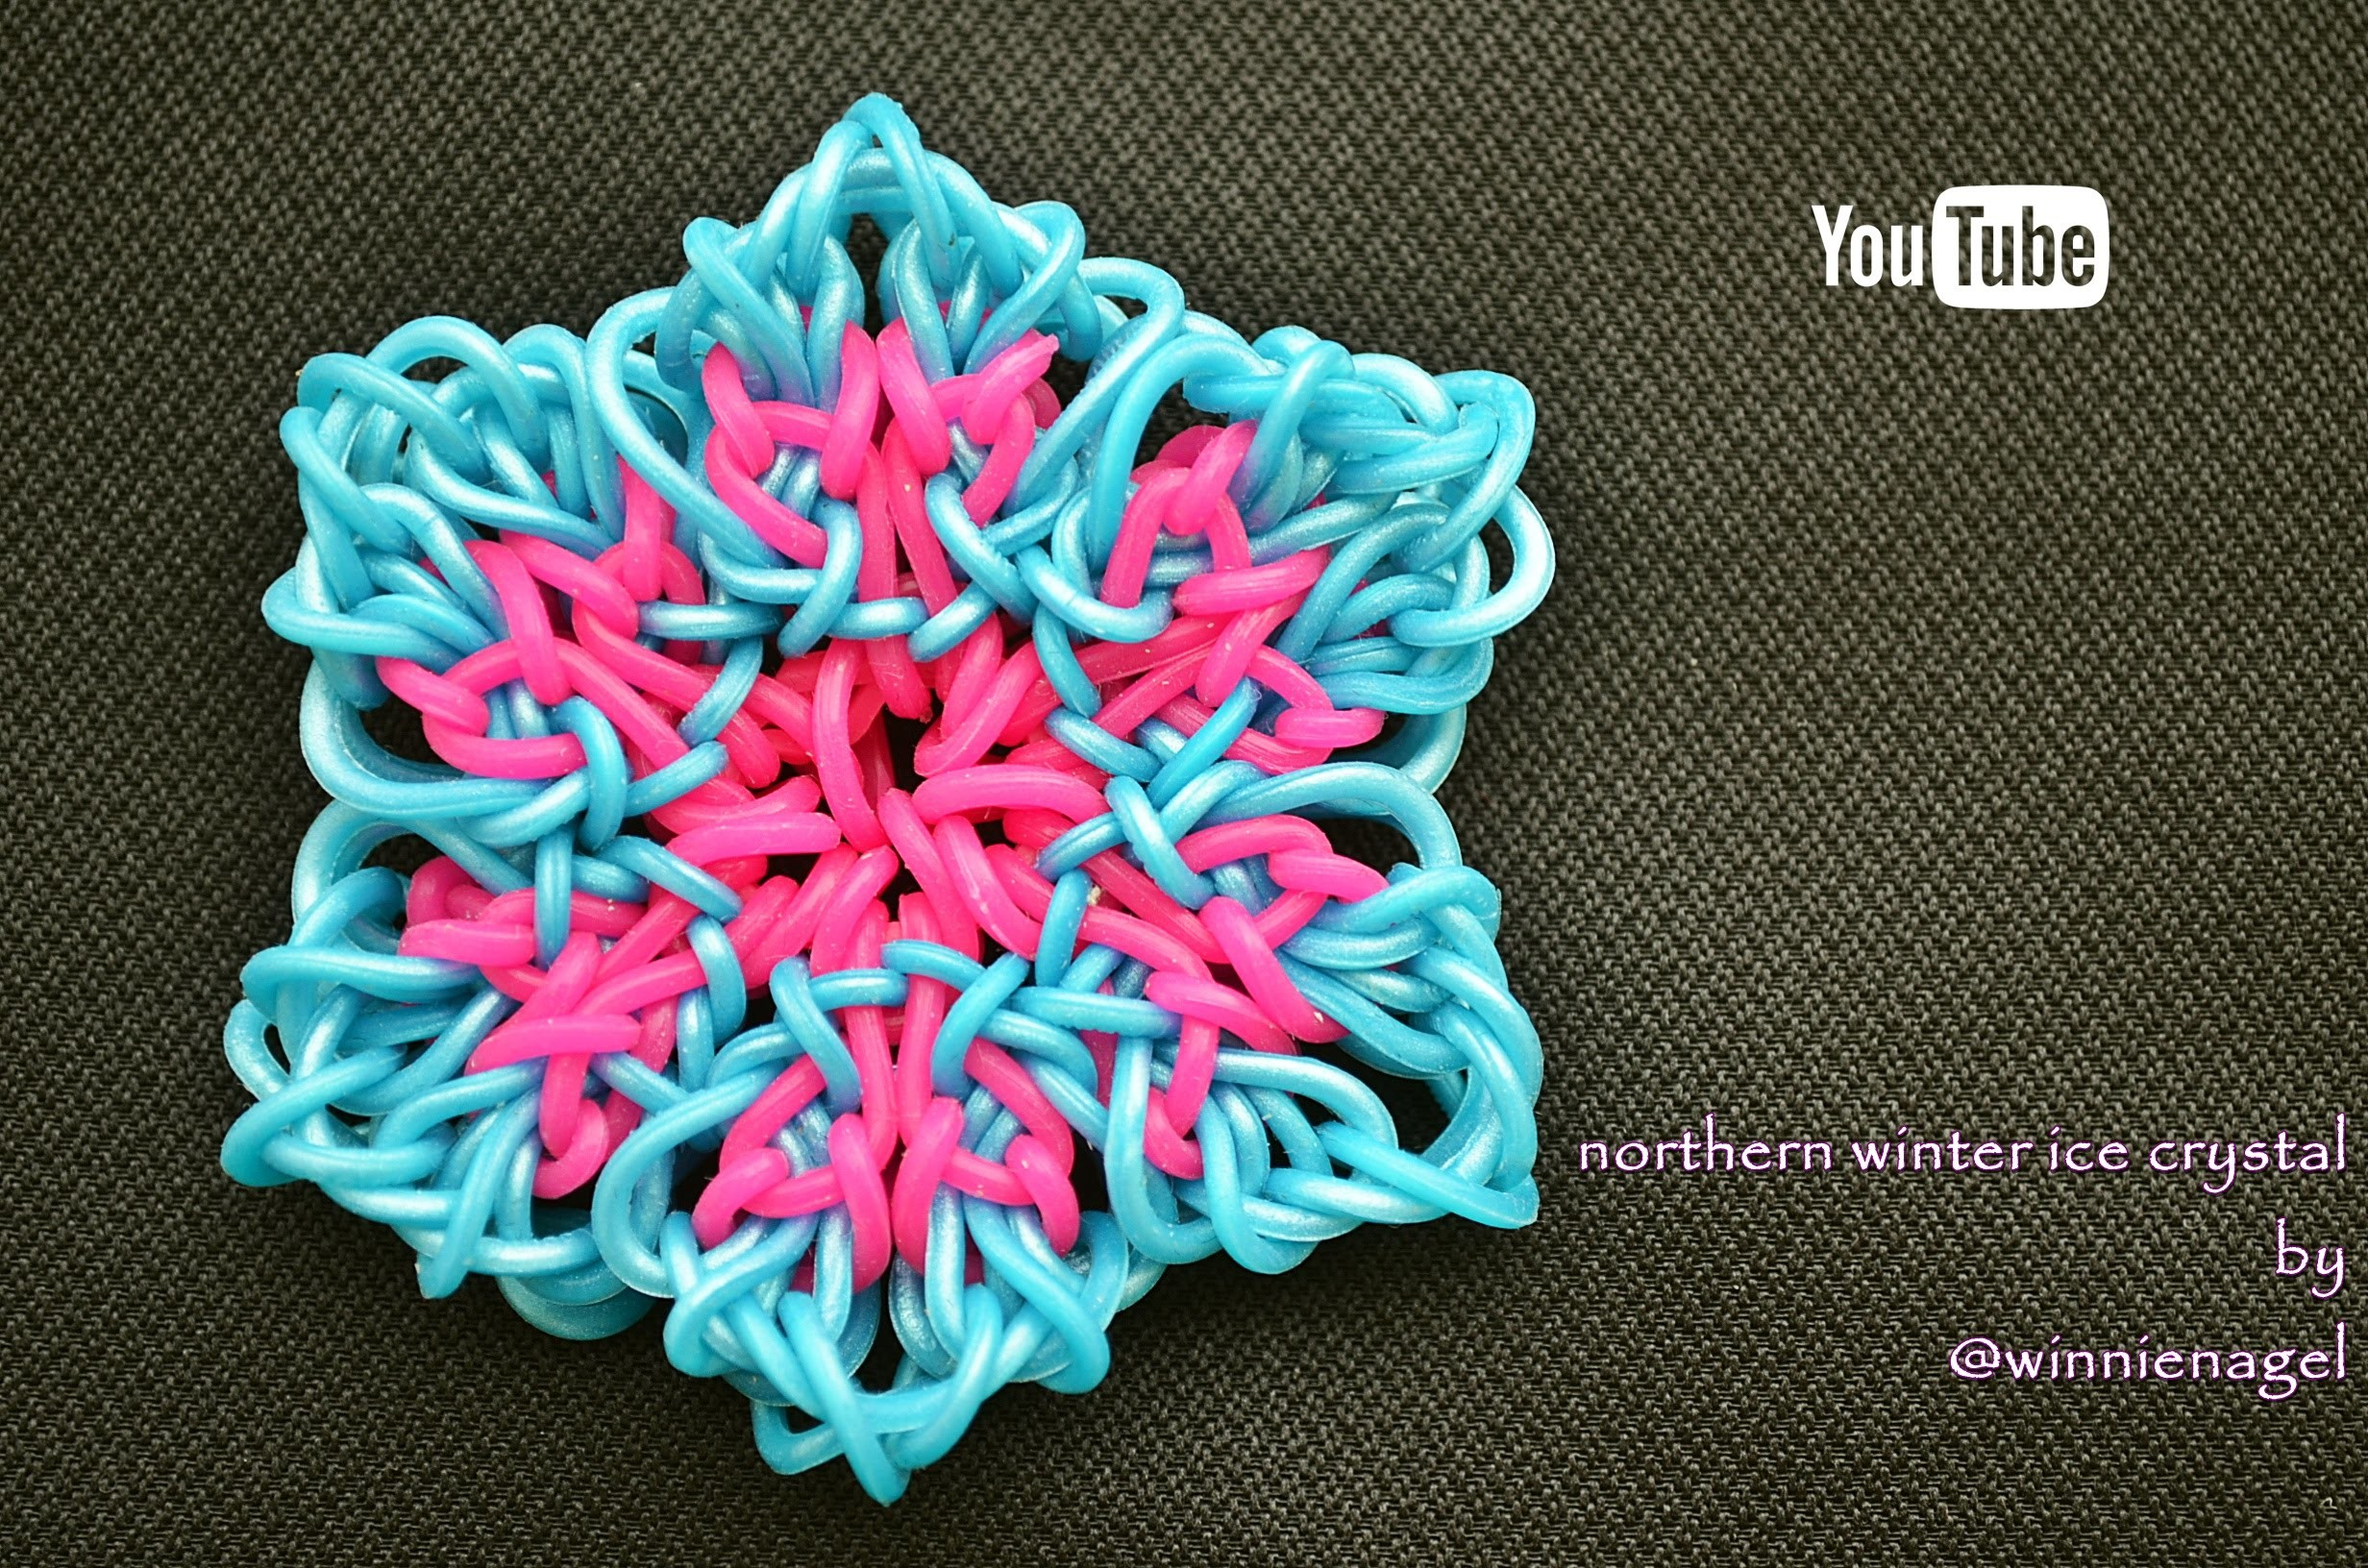 NORTHERN WINTER ICE CRYSTAL HOOK ONLY DESIGN TUTORIAL